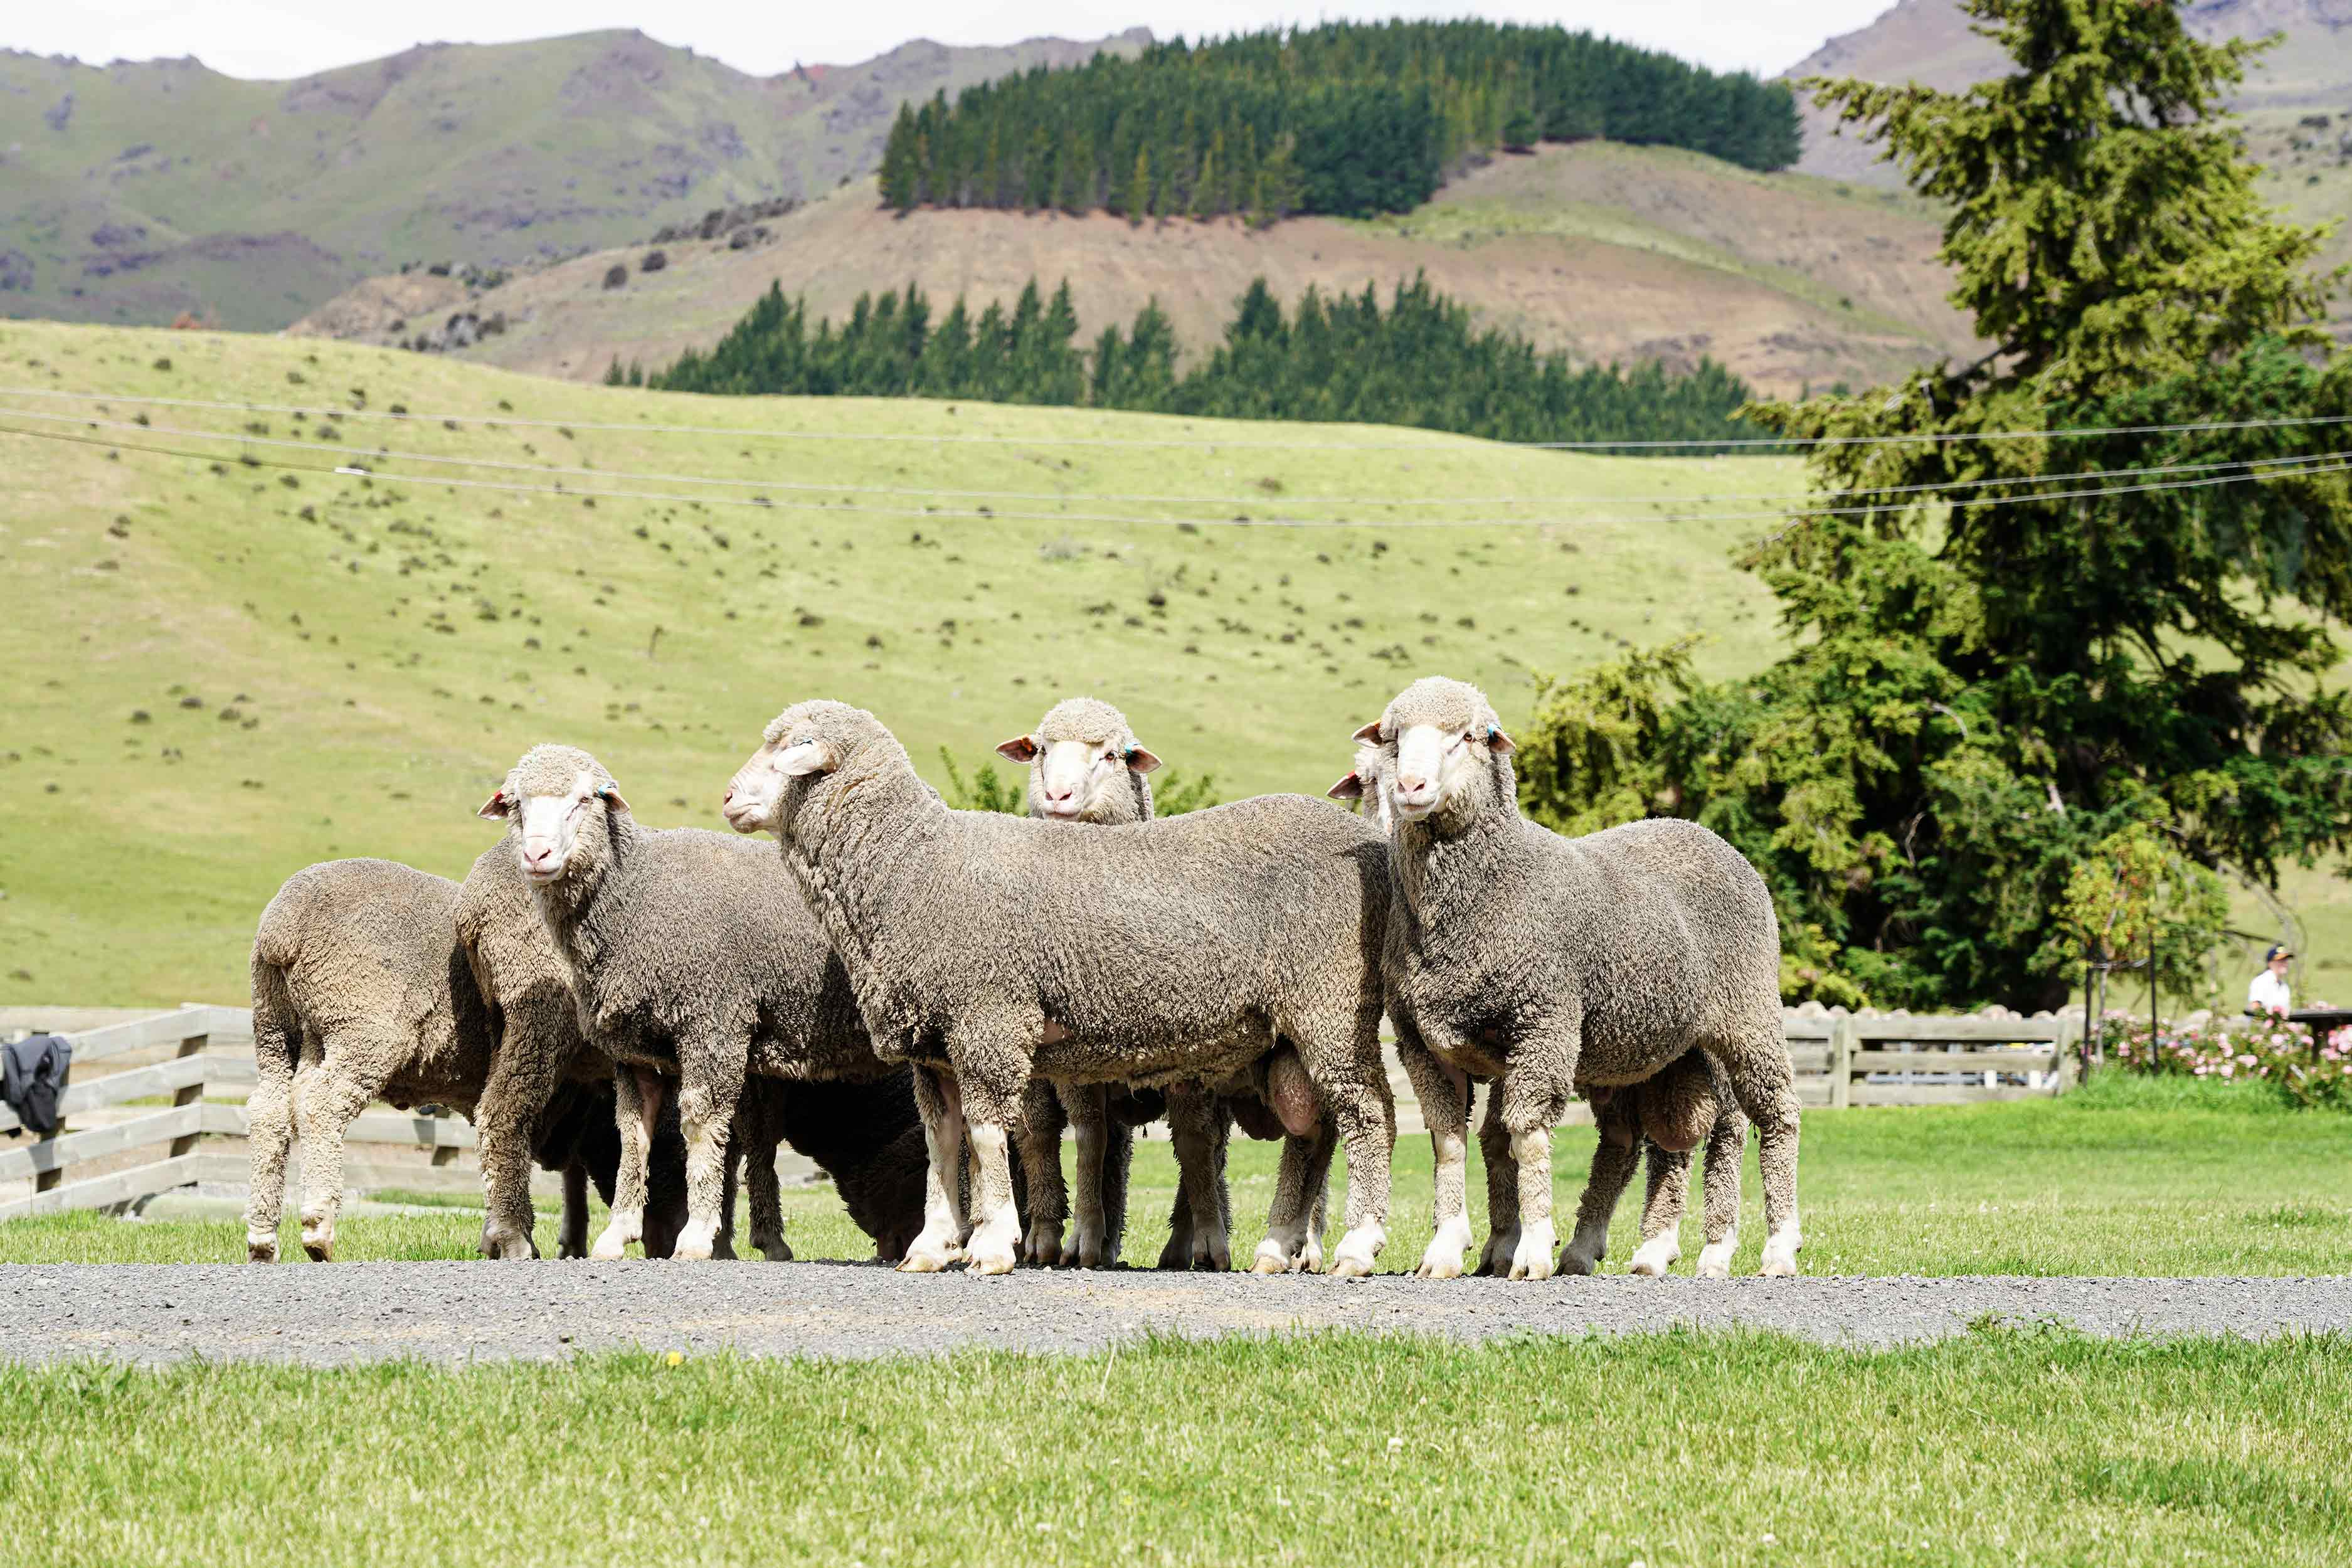 Sheep standing on a gravel road